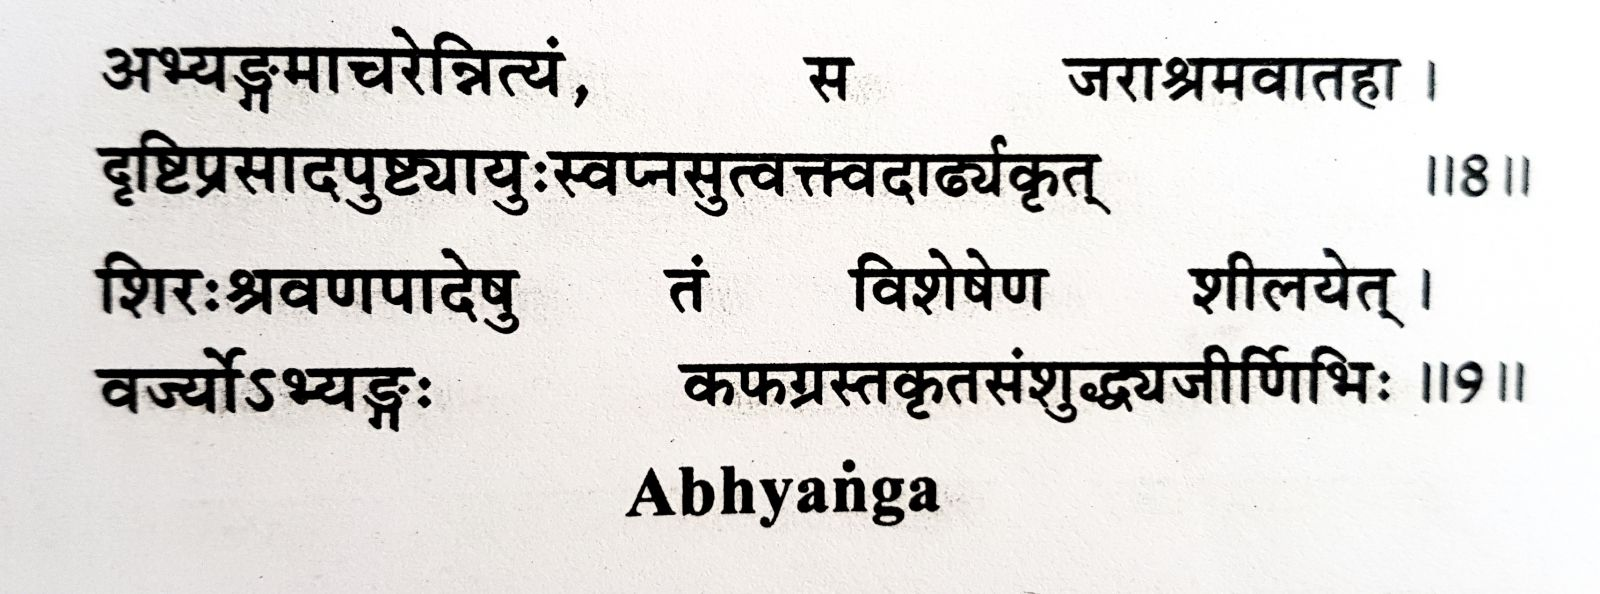 Ayurvedic Massage Abhyanga Shloka